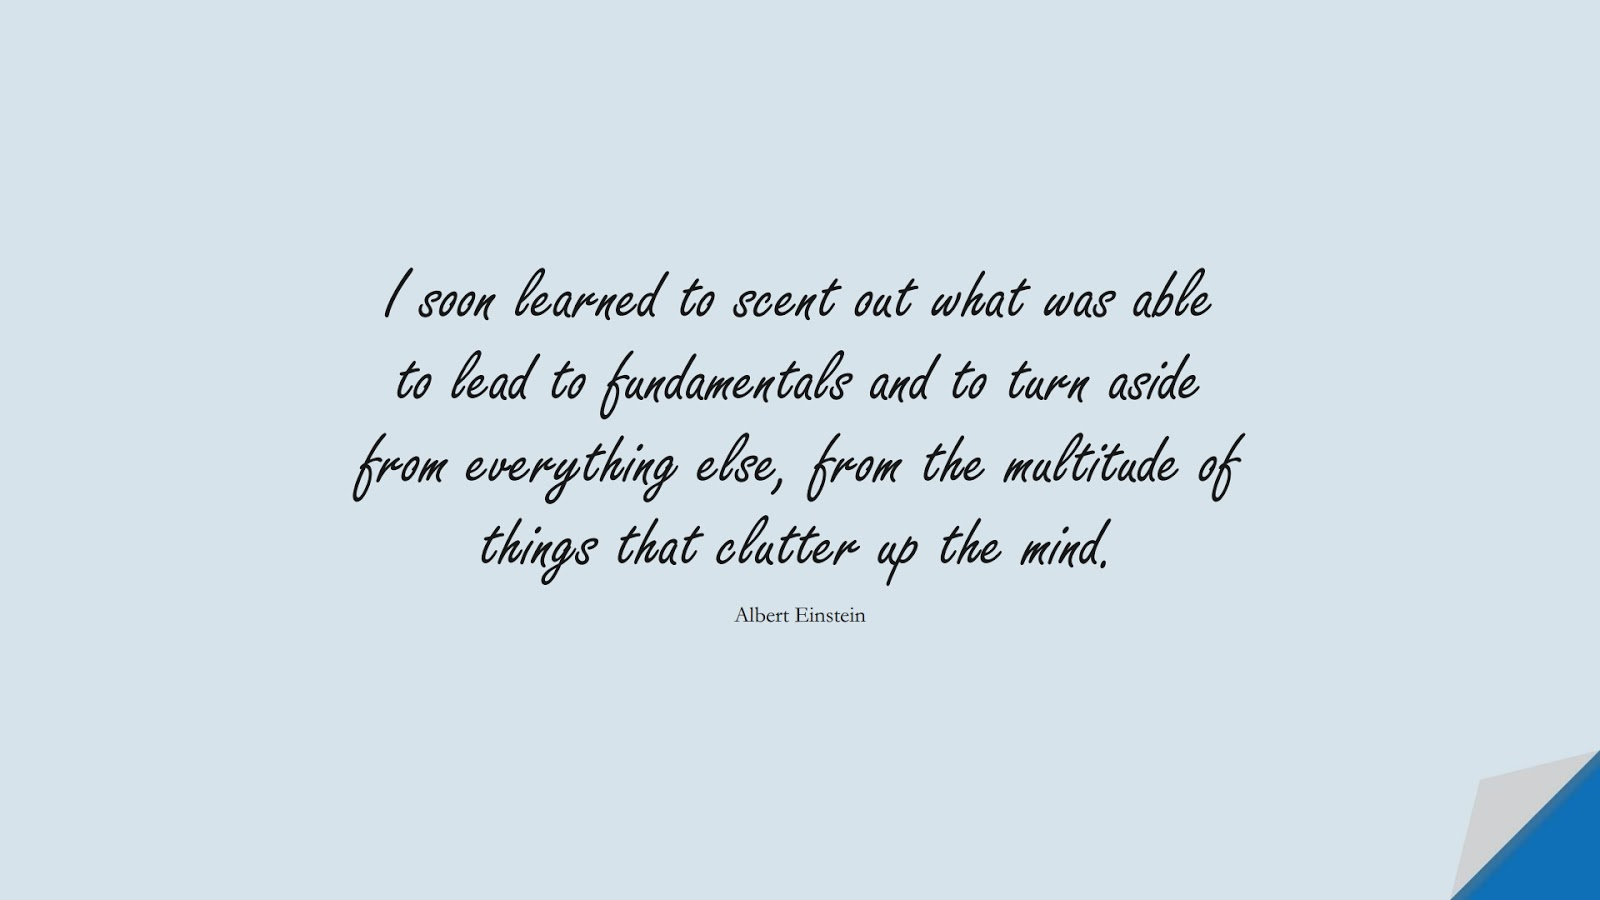 I soon learned to scent out what was able to lead to fundamentals and to turn aside from everything else, from the multitude of things that clutter up the mind. (Albert Einstein);  #AlbertEnsteinQuotes